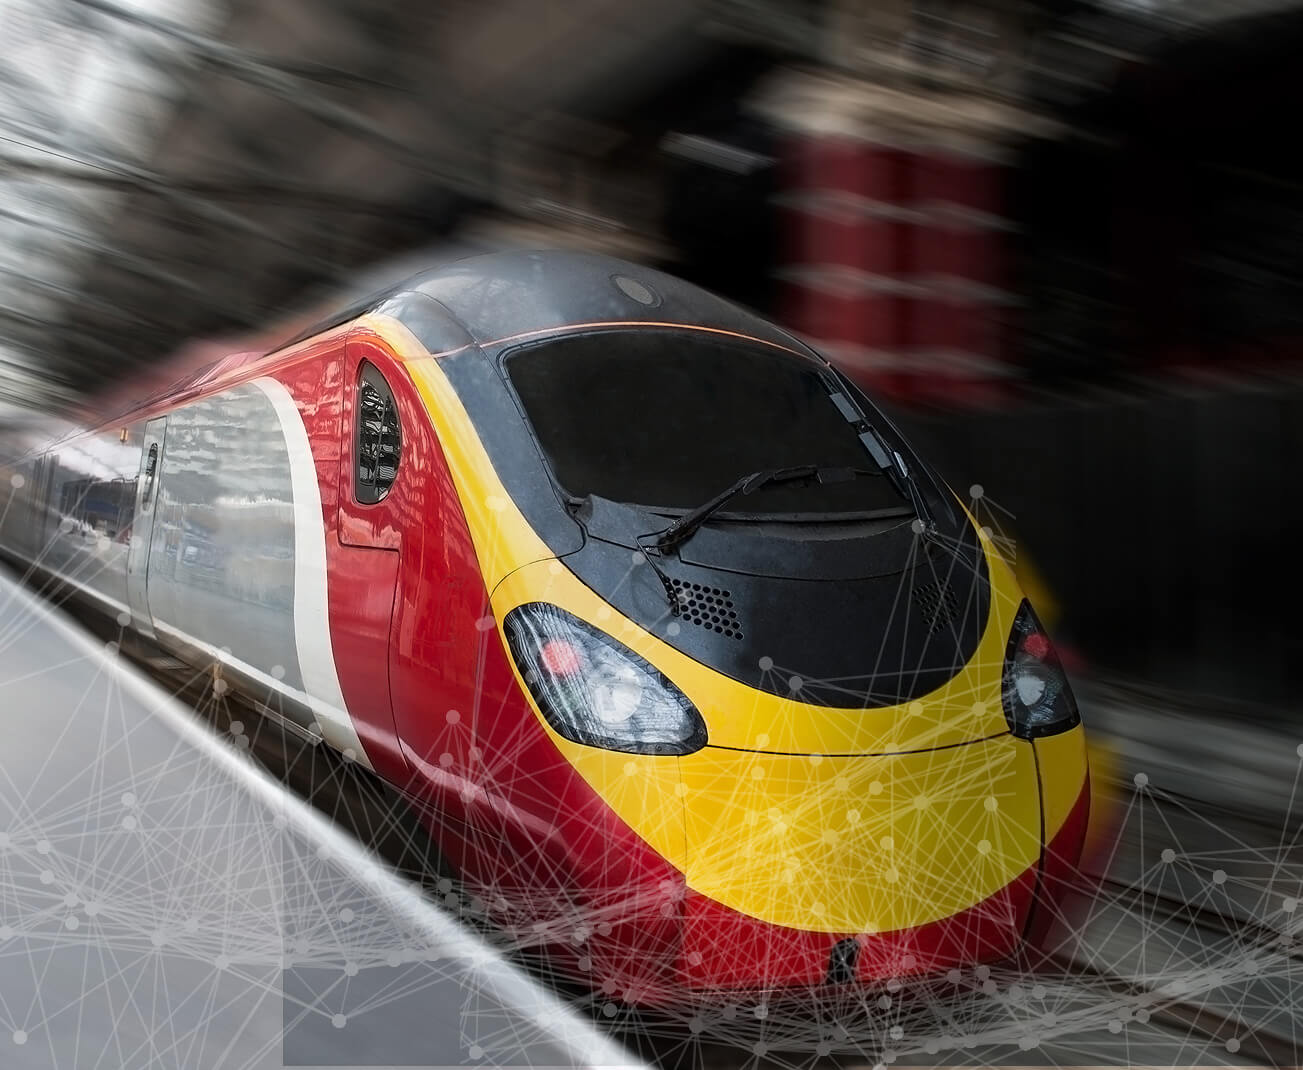 Test solutions for rail industry